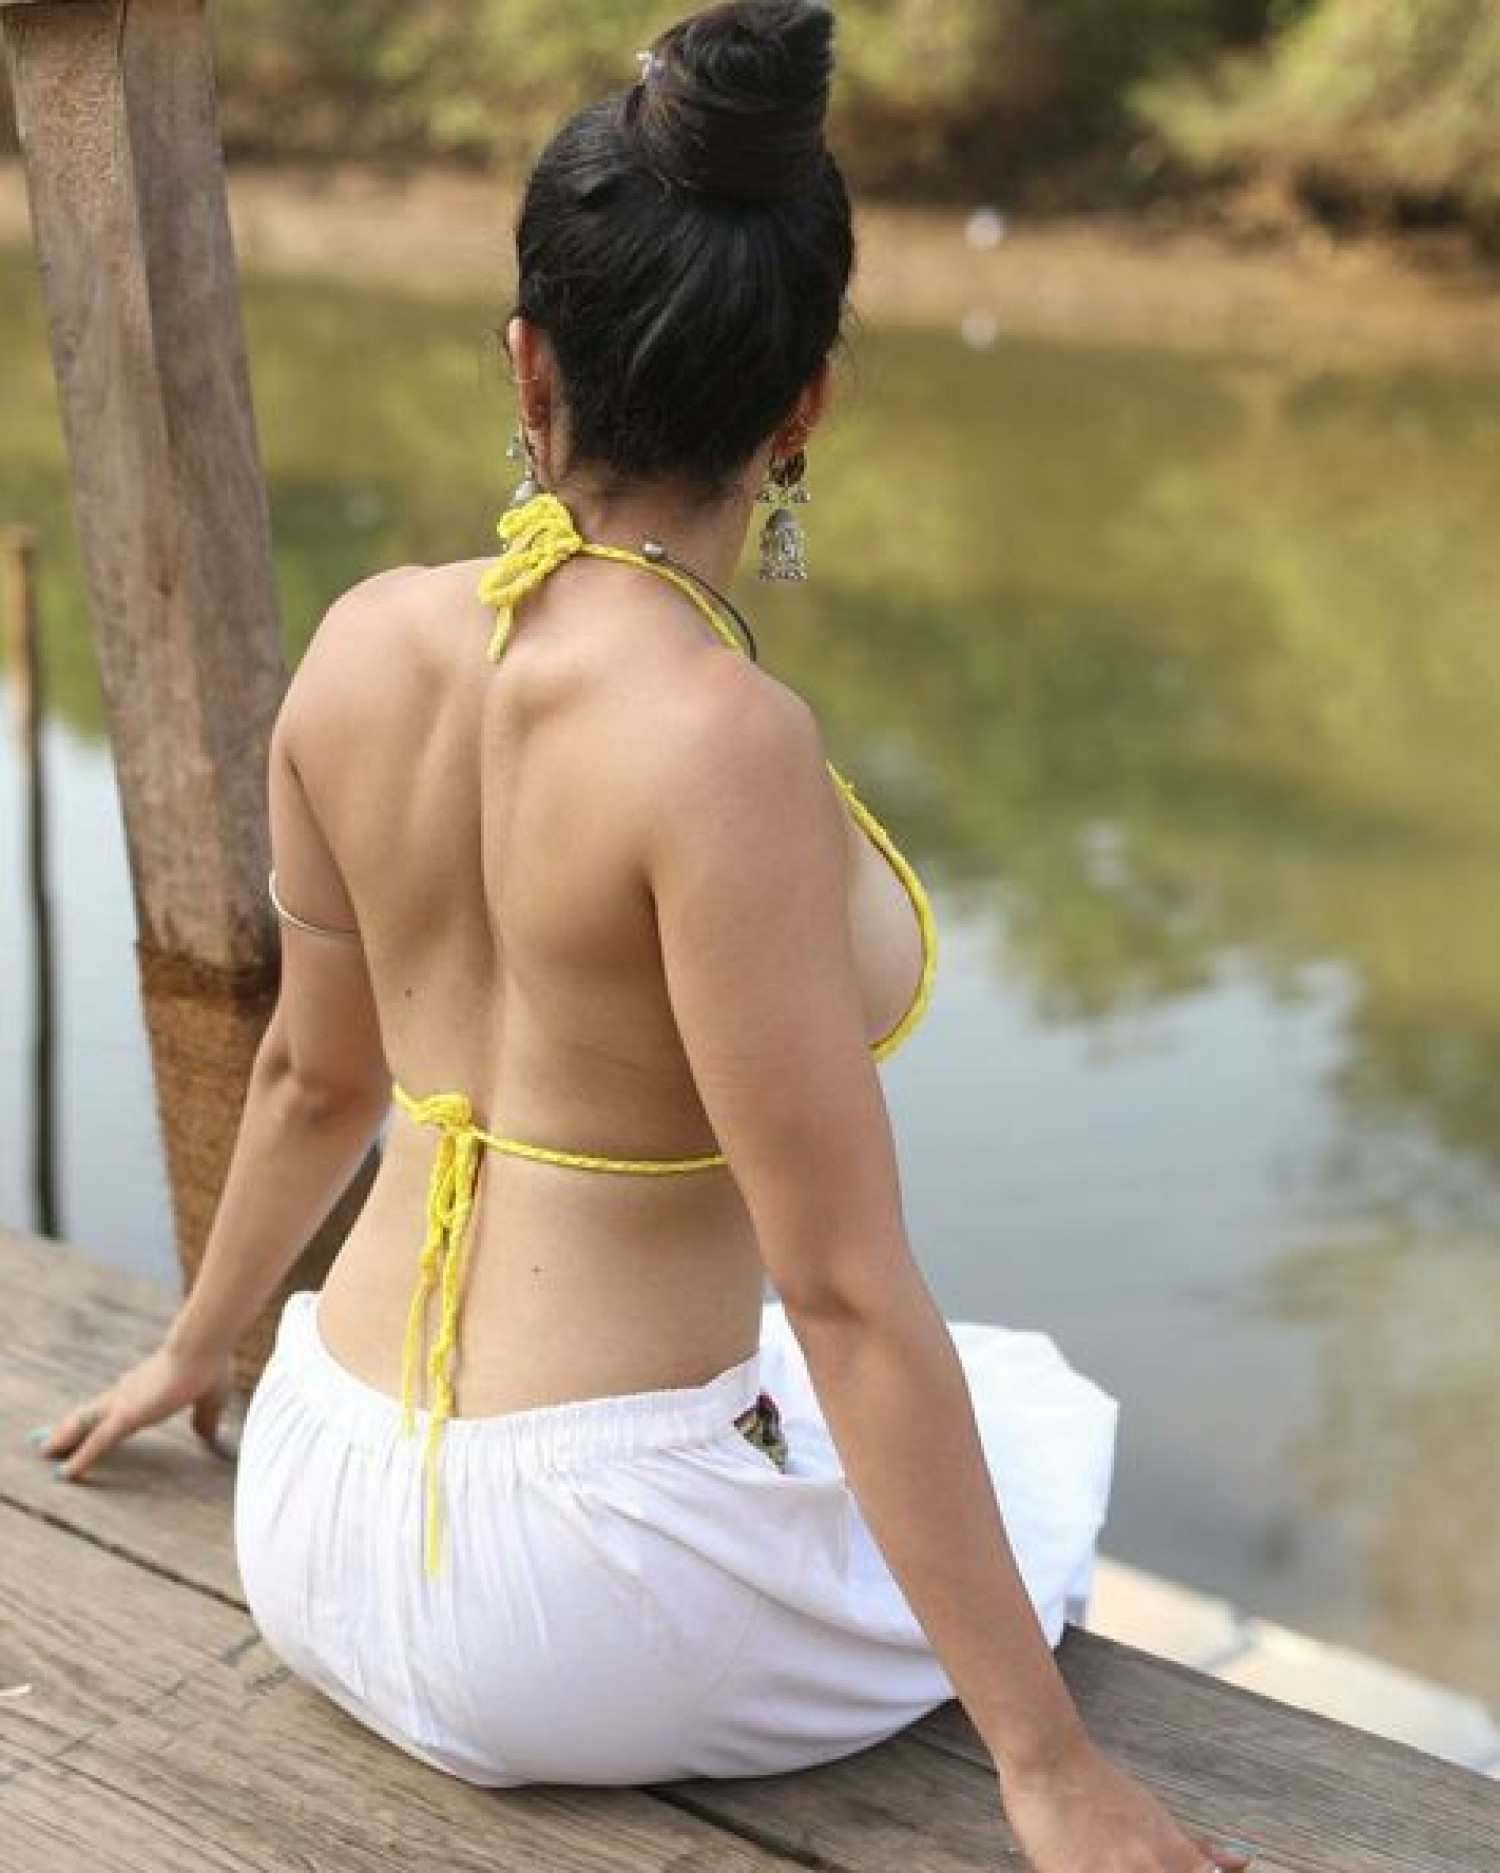 Sneha a hot Call Girl in Mumbai, mature and seductive lady available for you. Infographic